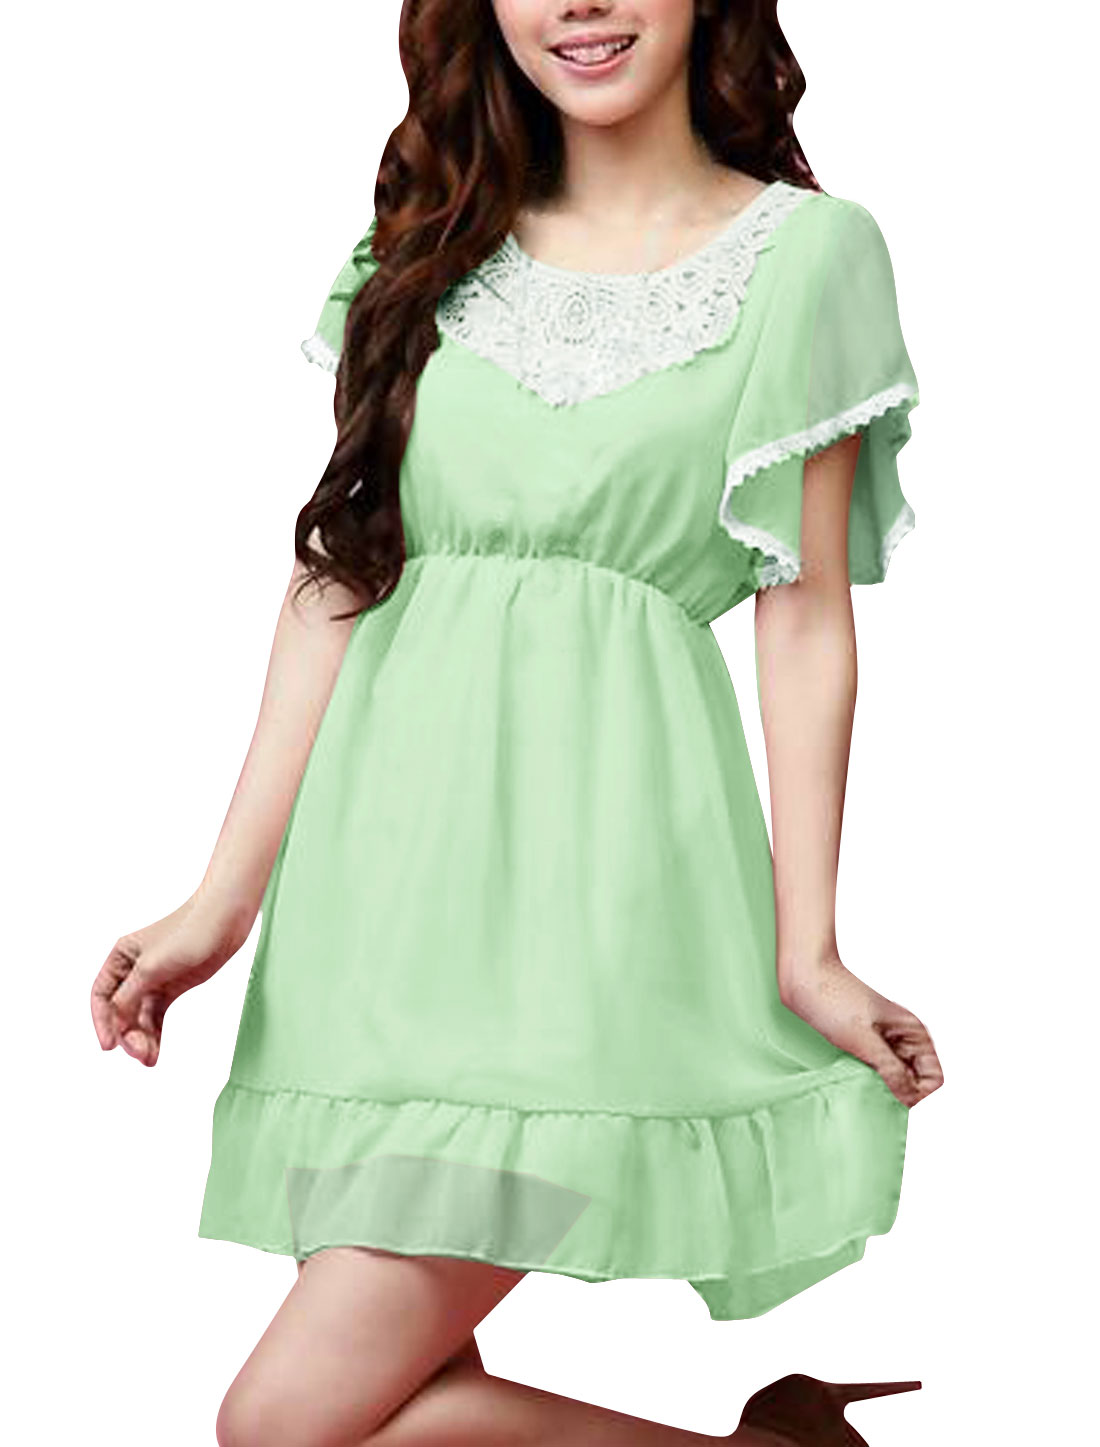 Pullover Scoop Neck Short Flare Sleeve Light Green Mini Dress for Lady XL